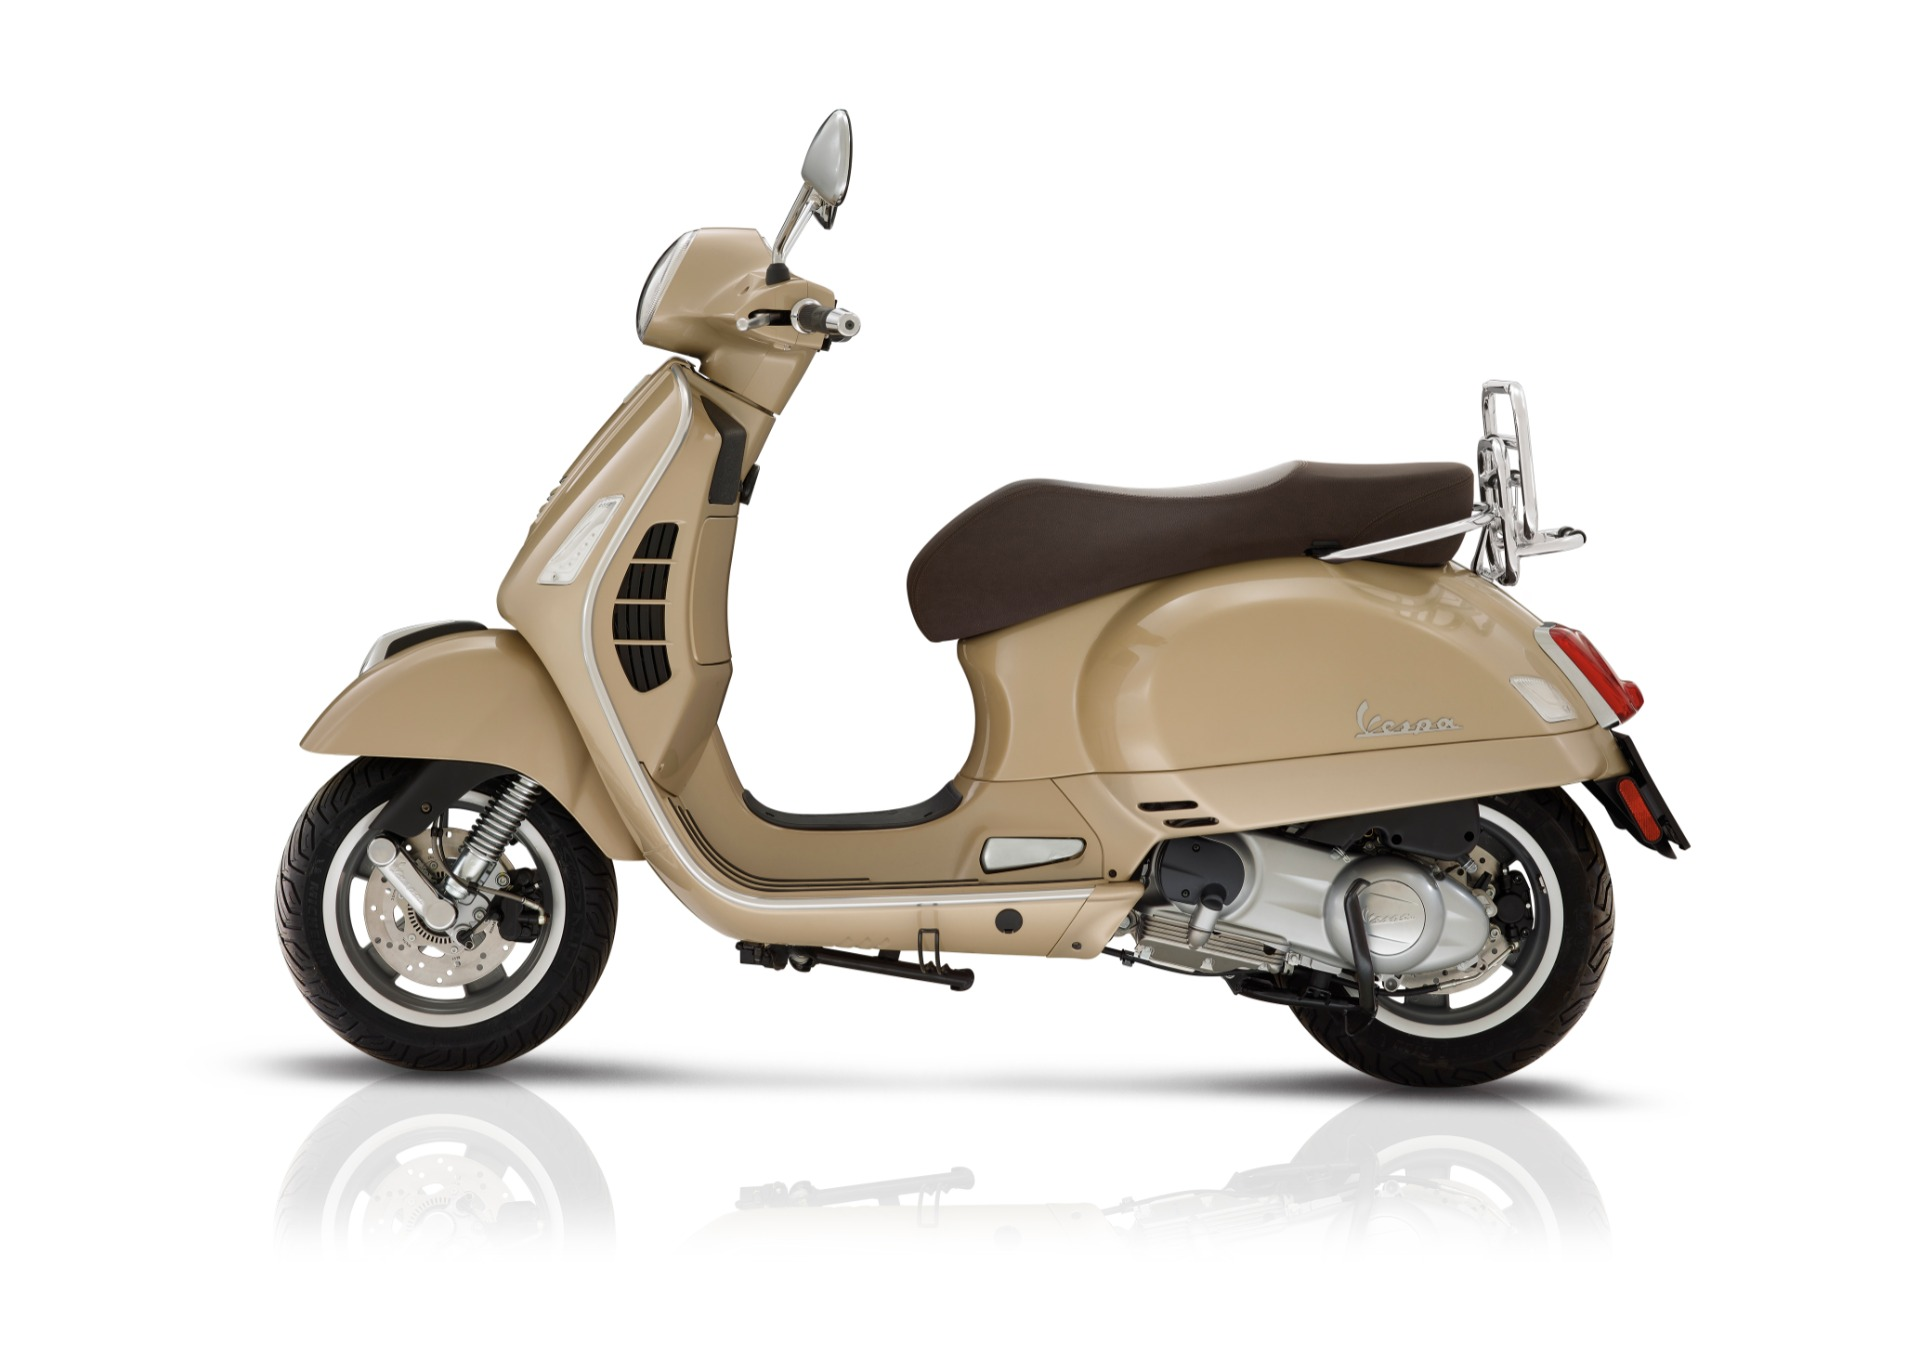 2019 vespa gts 300 stock 1209 for sale near brookfield. Black Bedroom Furniture Sets. Home Design Ideas